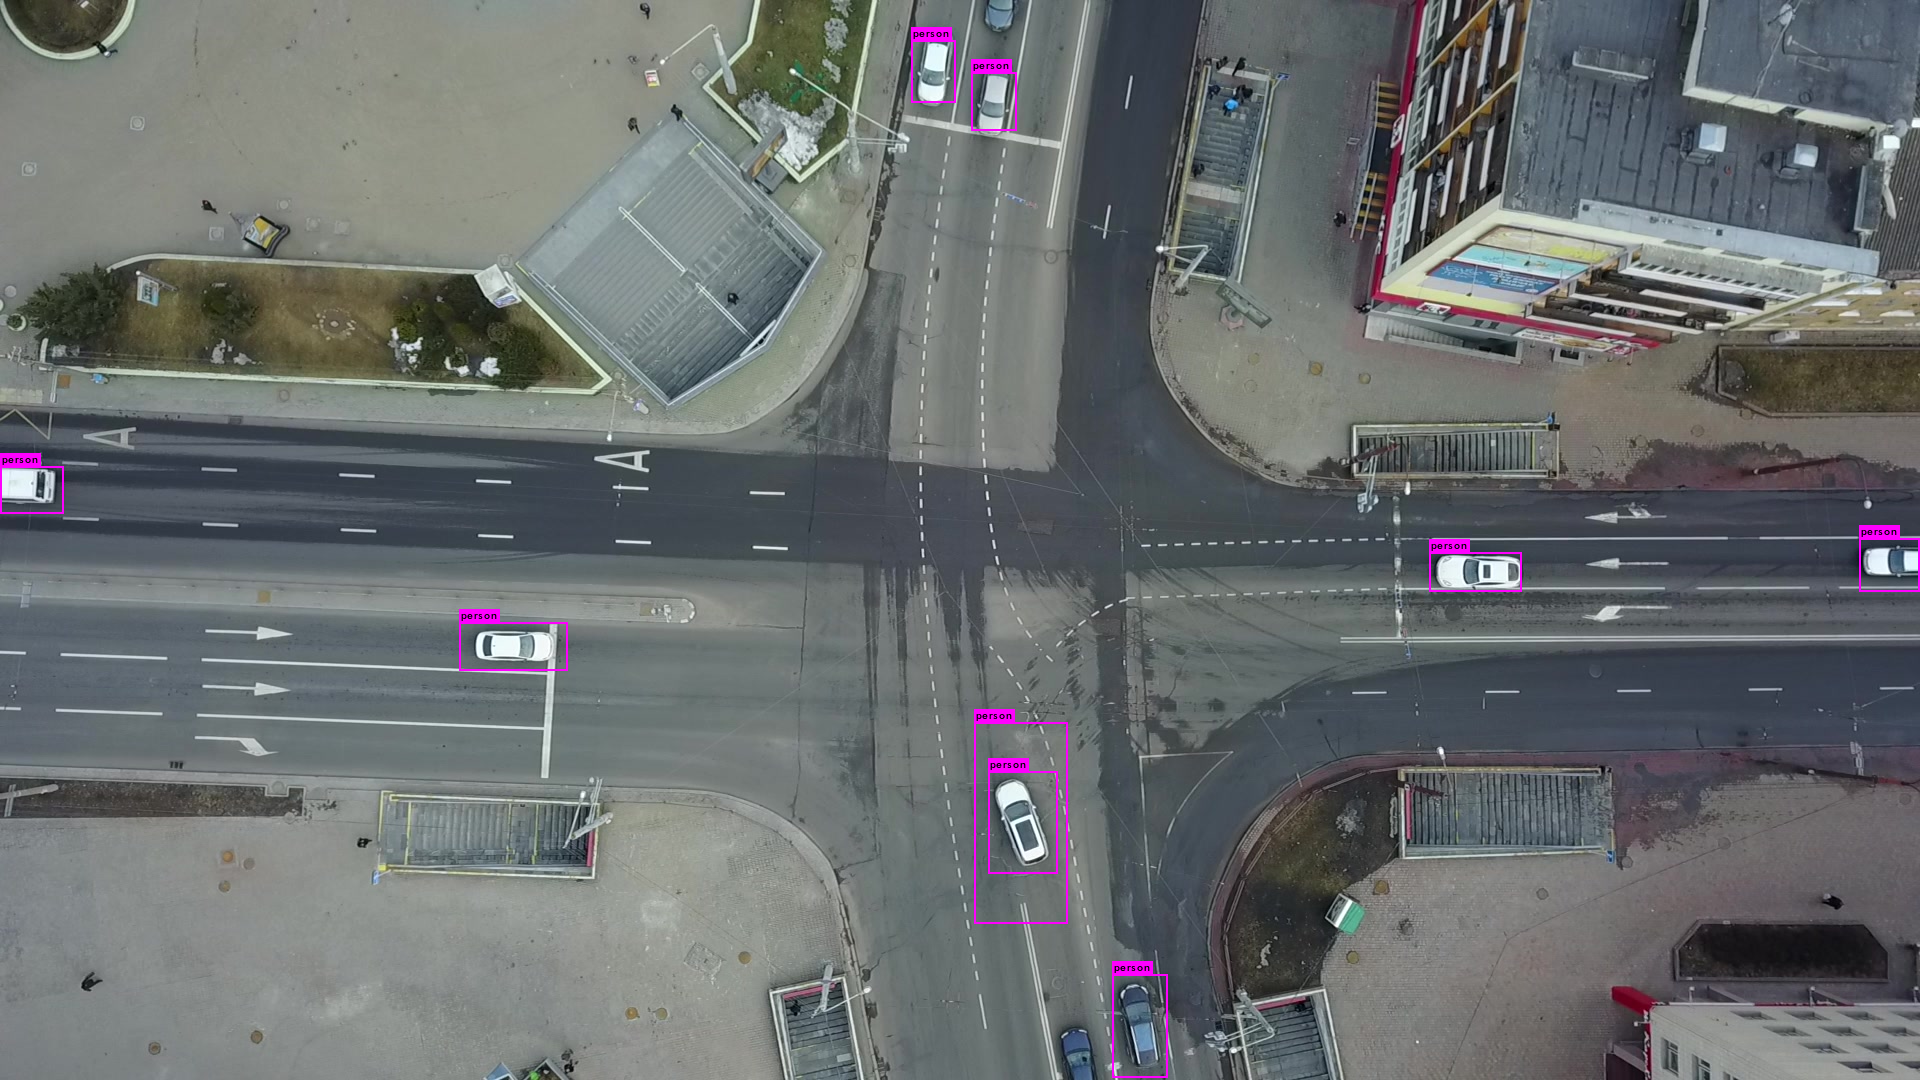 Run dataset on pretrained weights · Issue #3 · jekhor/aerial-cars